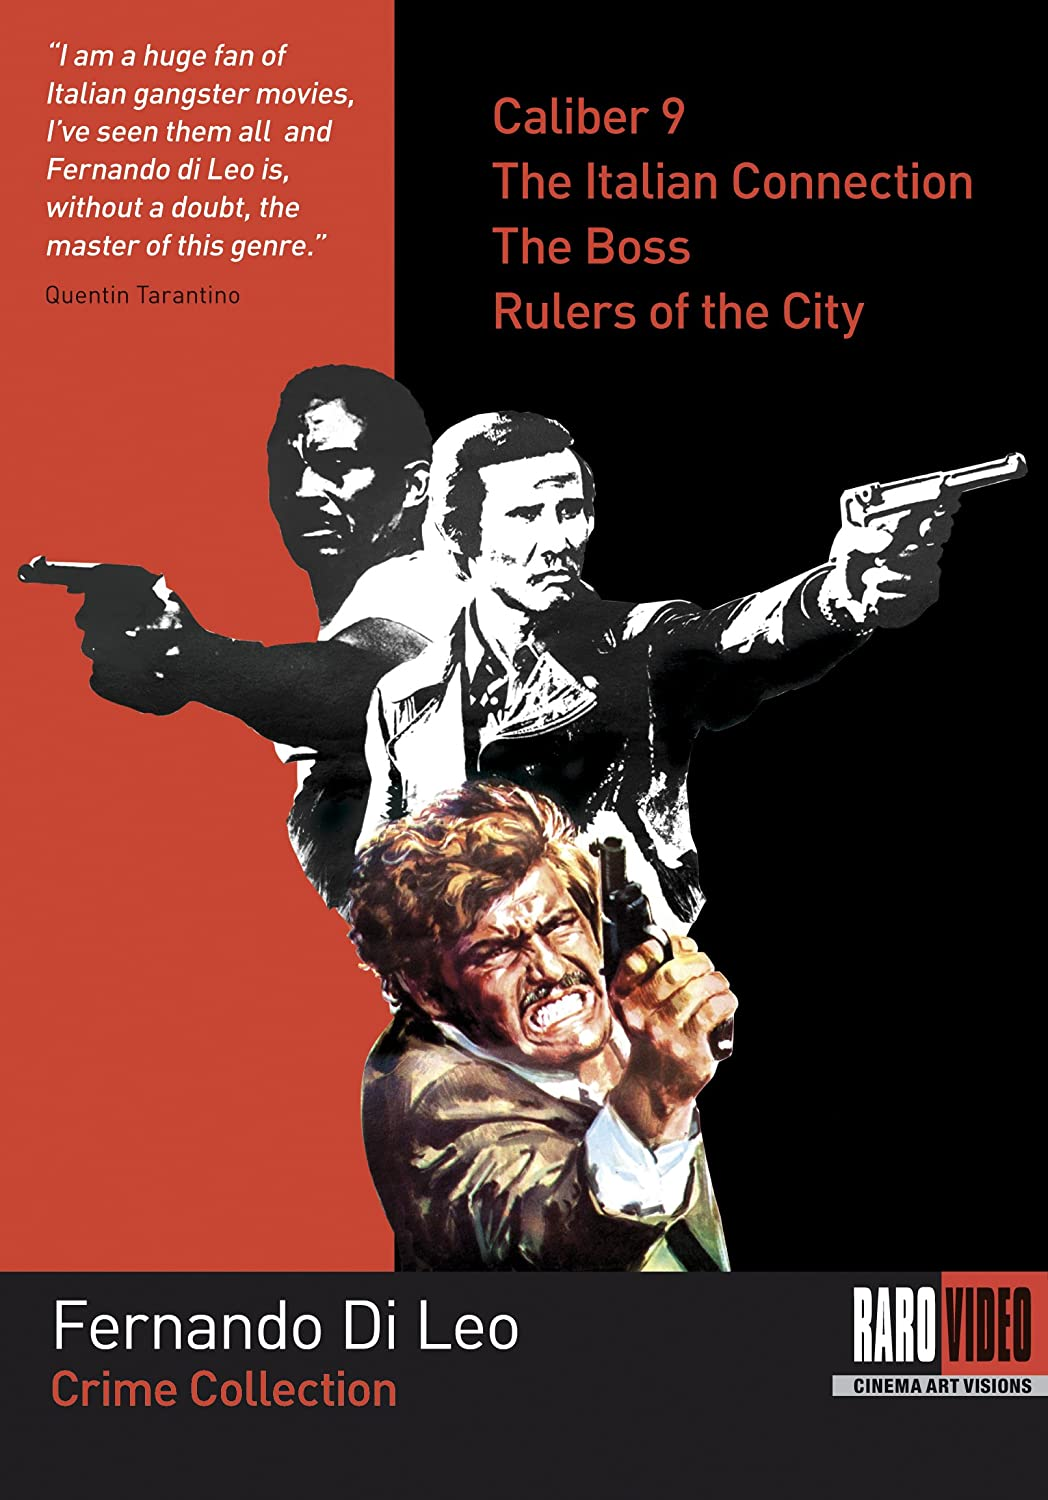 Amazon.com: Fernando Di Leo Crime Collection (Caliber 9 / The Italian  Connection / The Boss / Rulers of the City): Jack Palance, Henry Silva, ...